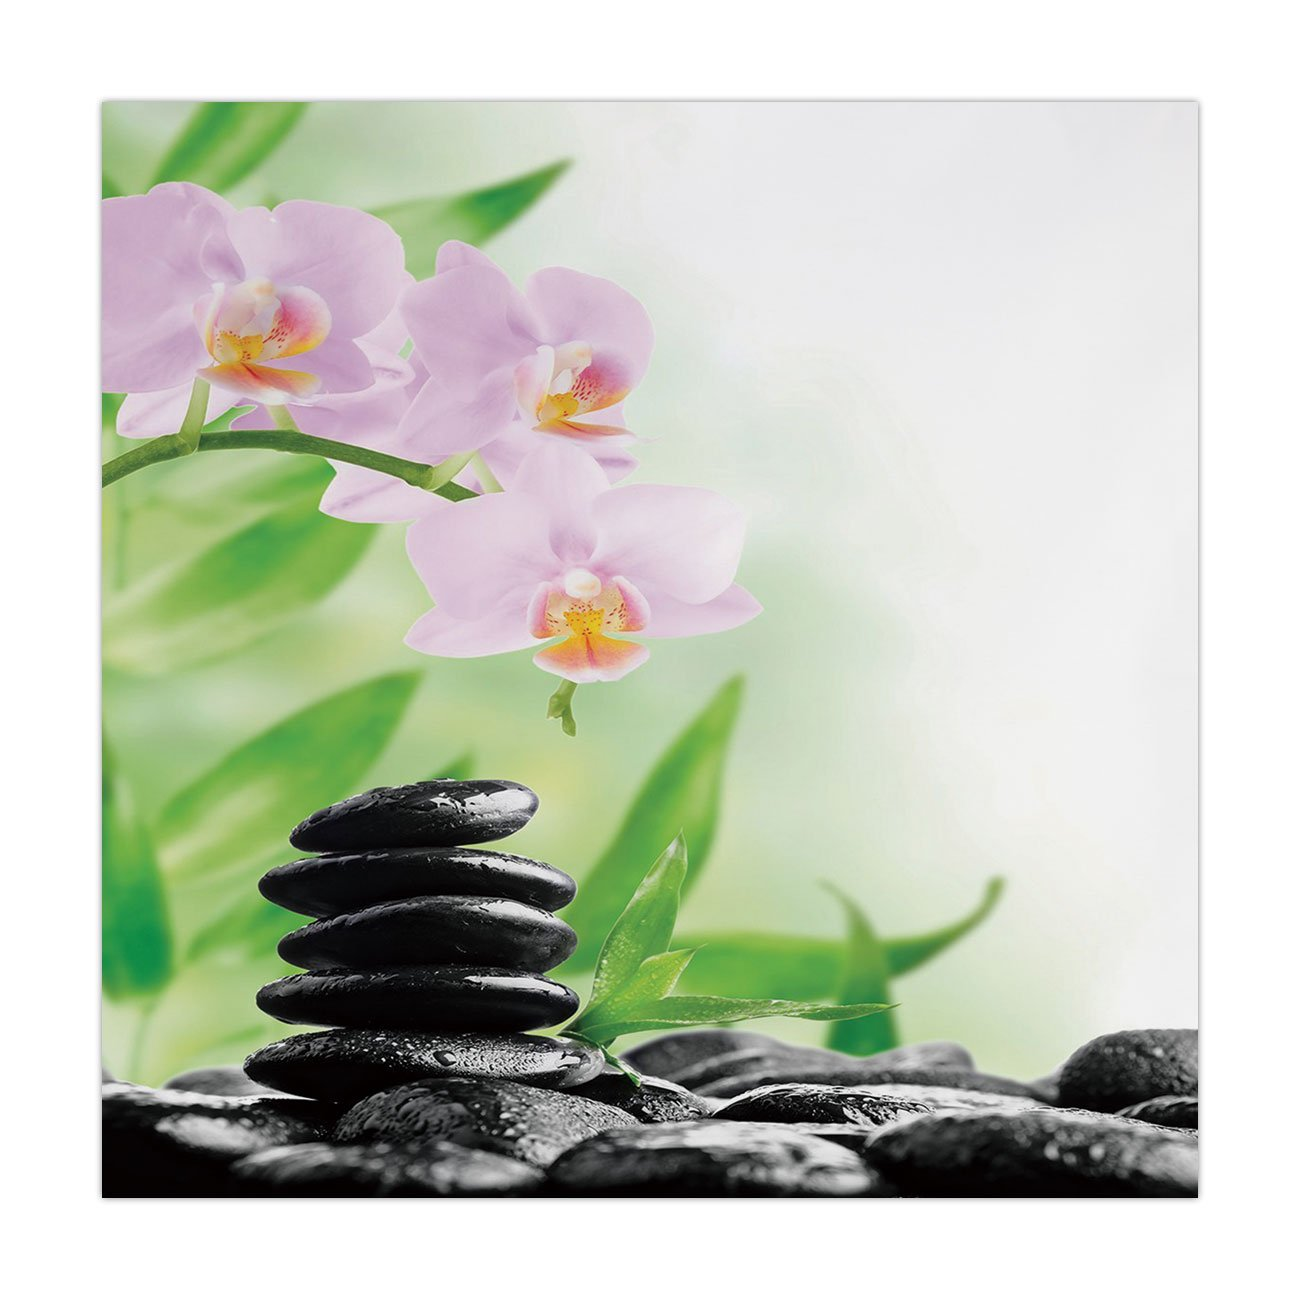 Polyester Square Tablecloth,Spa,Zen Basalt Stones and Orchid with Dew Peaceful Nature Theraphy Massage Meditation Decorative,Black Pink Green,Dining Room Kitchen Picnic Table Cloth Cover,for Outdoor I